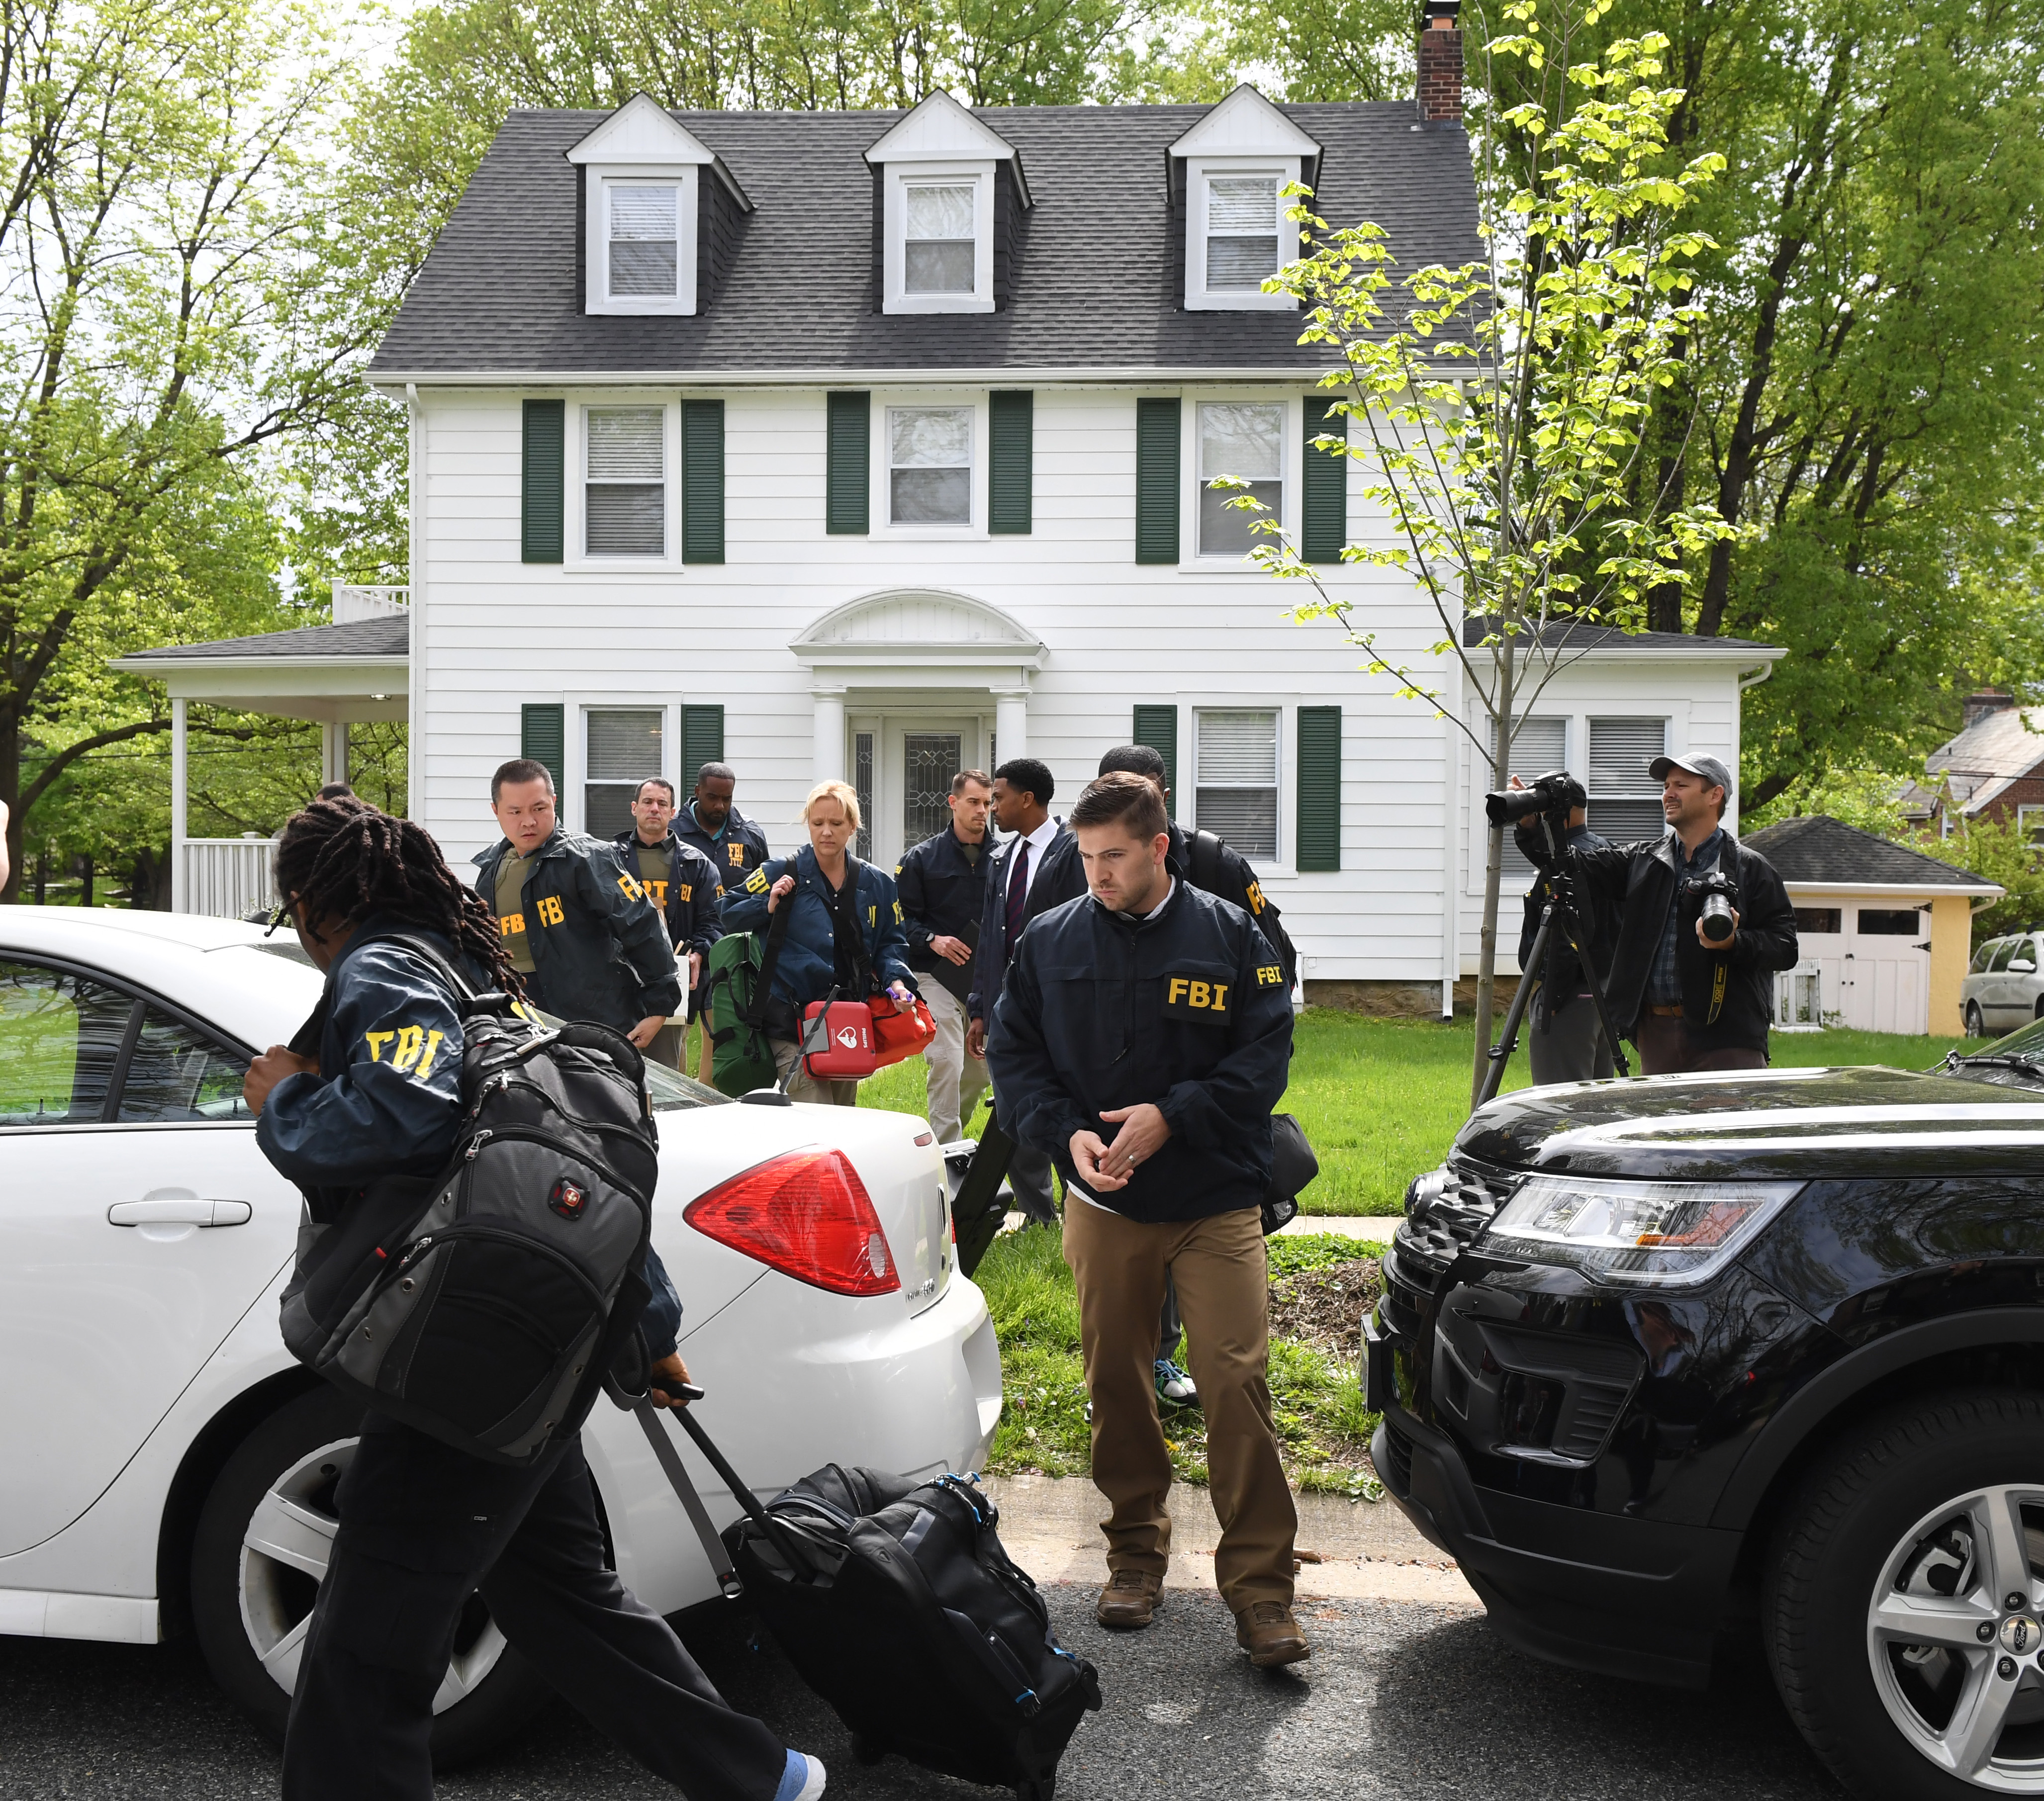 Federal agents remove items from the home of Baltimore Mayor Catherine Pugh in the 3400 block of Ellamont Rd as they execute a search warrant, on April 25, 2019 in Baltimore, Maryland. (John Strohsacker/Getty Images)